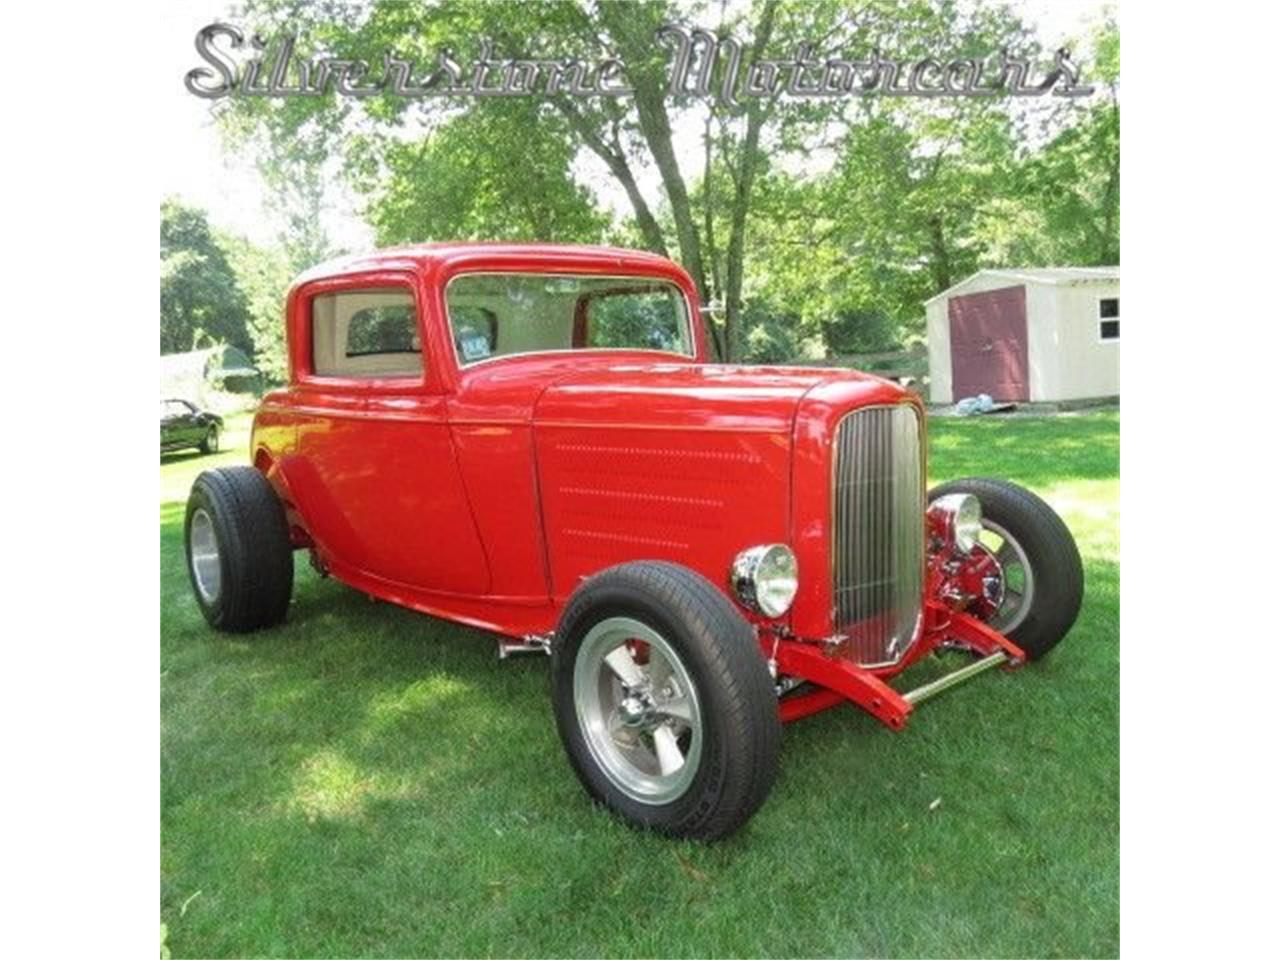 Large Picture of Classic '32 Ford 3-Window Coupe located in Massachusetts - $45,000.00 Offered by Silverstone Motorcars - FAHW